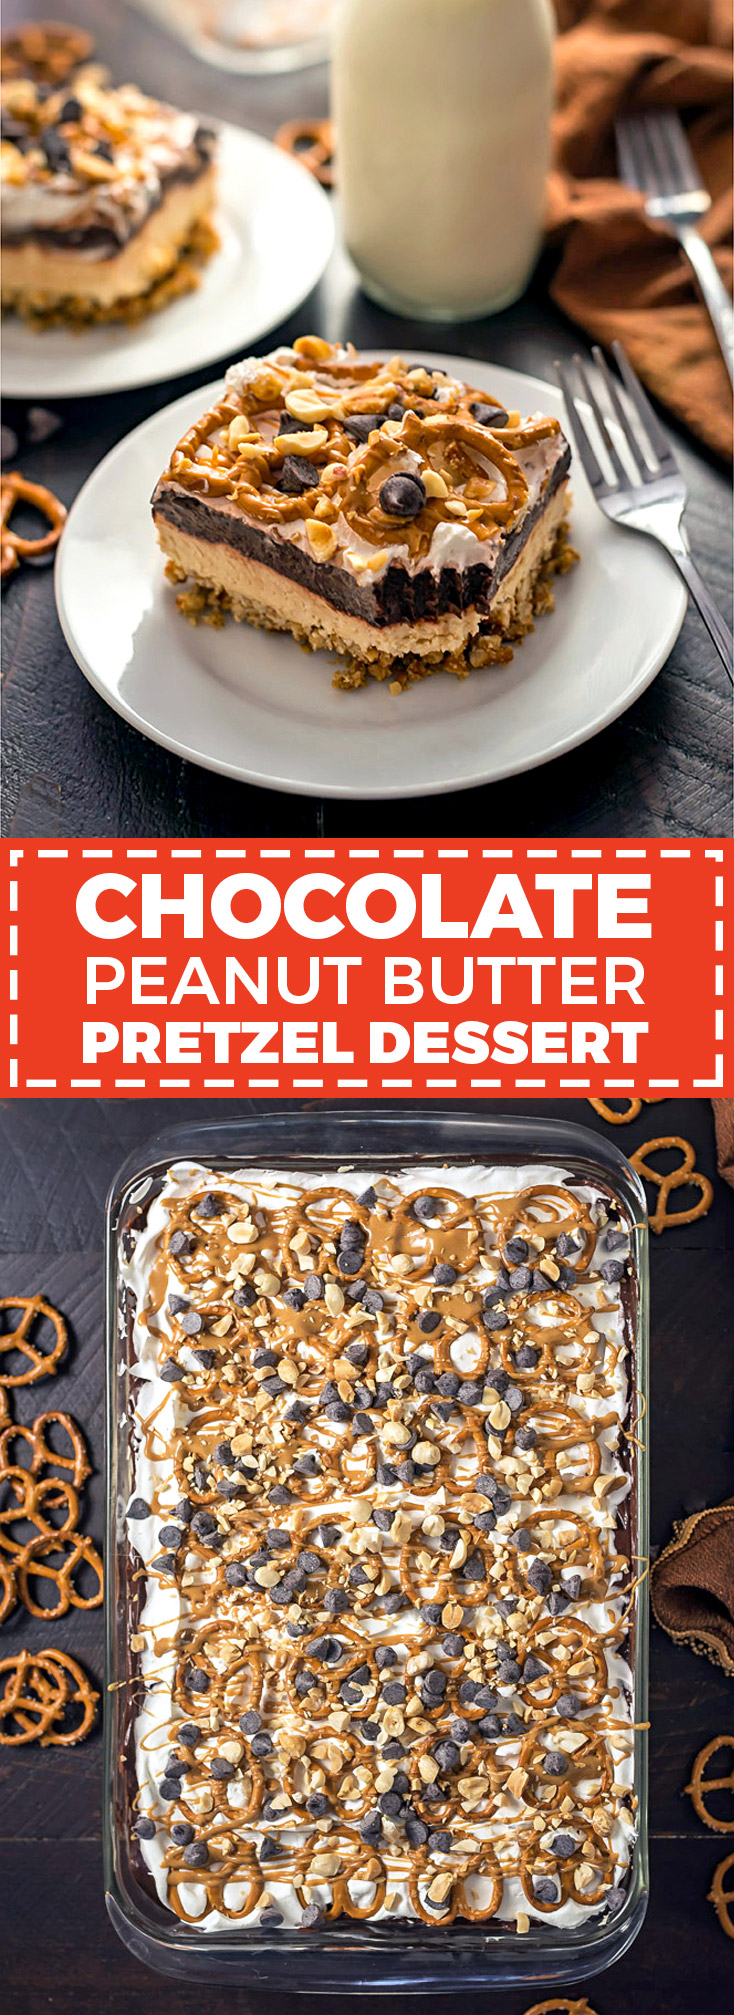 Chocolate Peanut Butter Pretzel Dessert. This easy to make, creamy, chocolatey, sweet-and-salty dessert is exactly what you need to serve a crowd. | hostthetoast.com